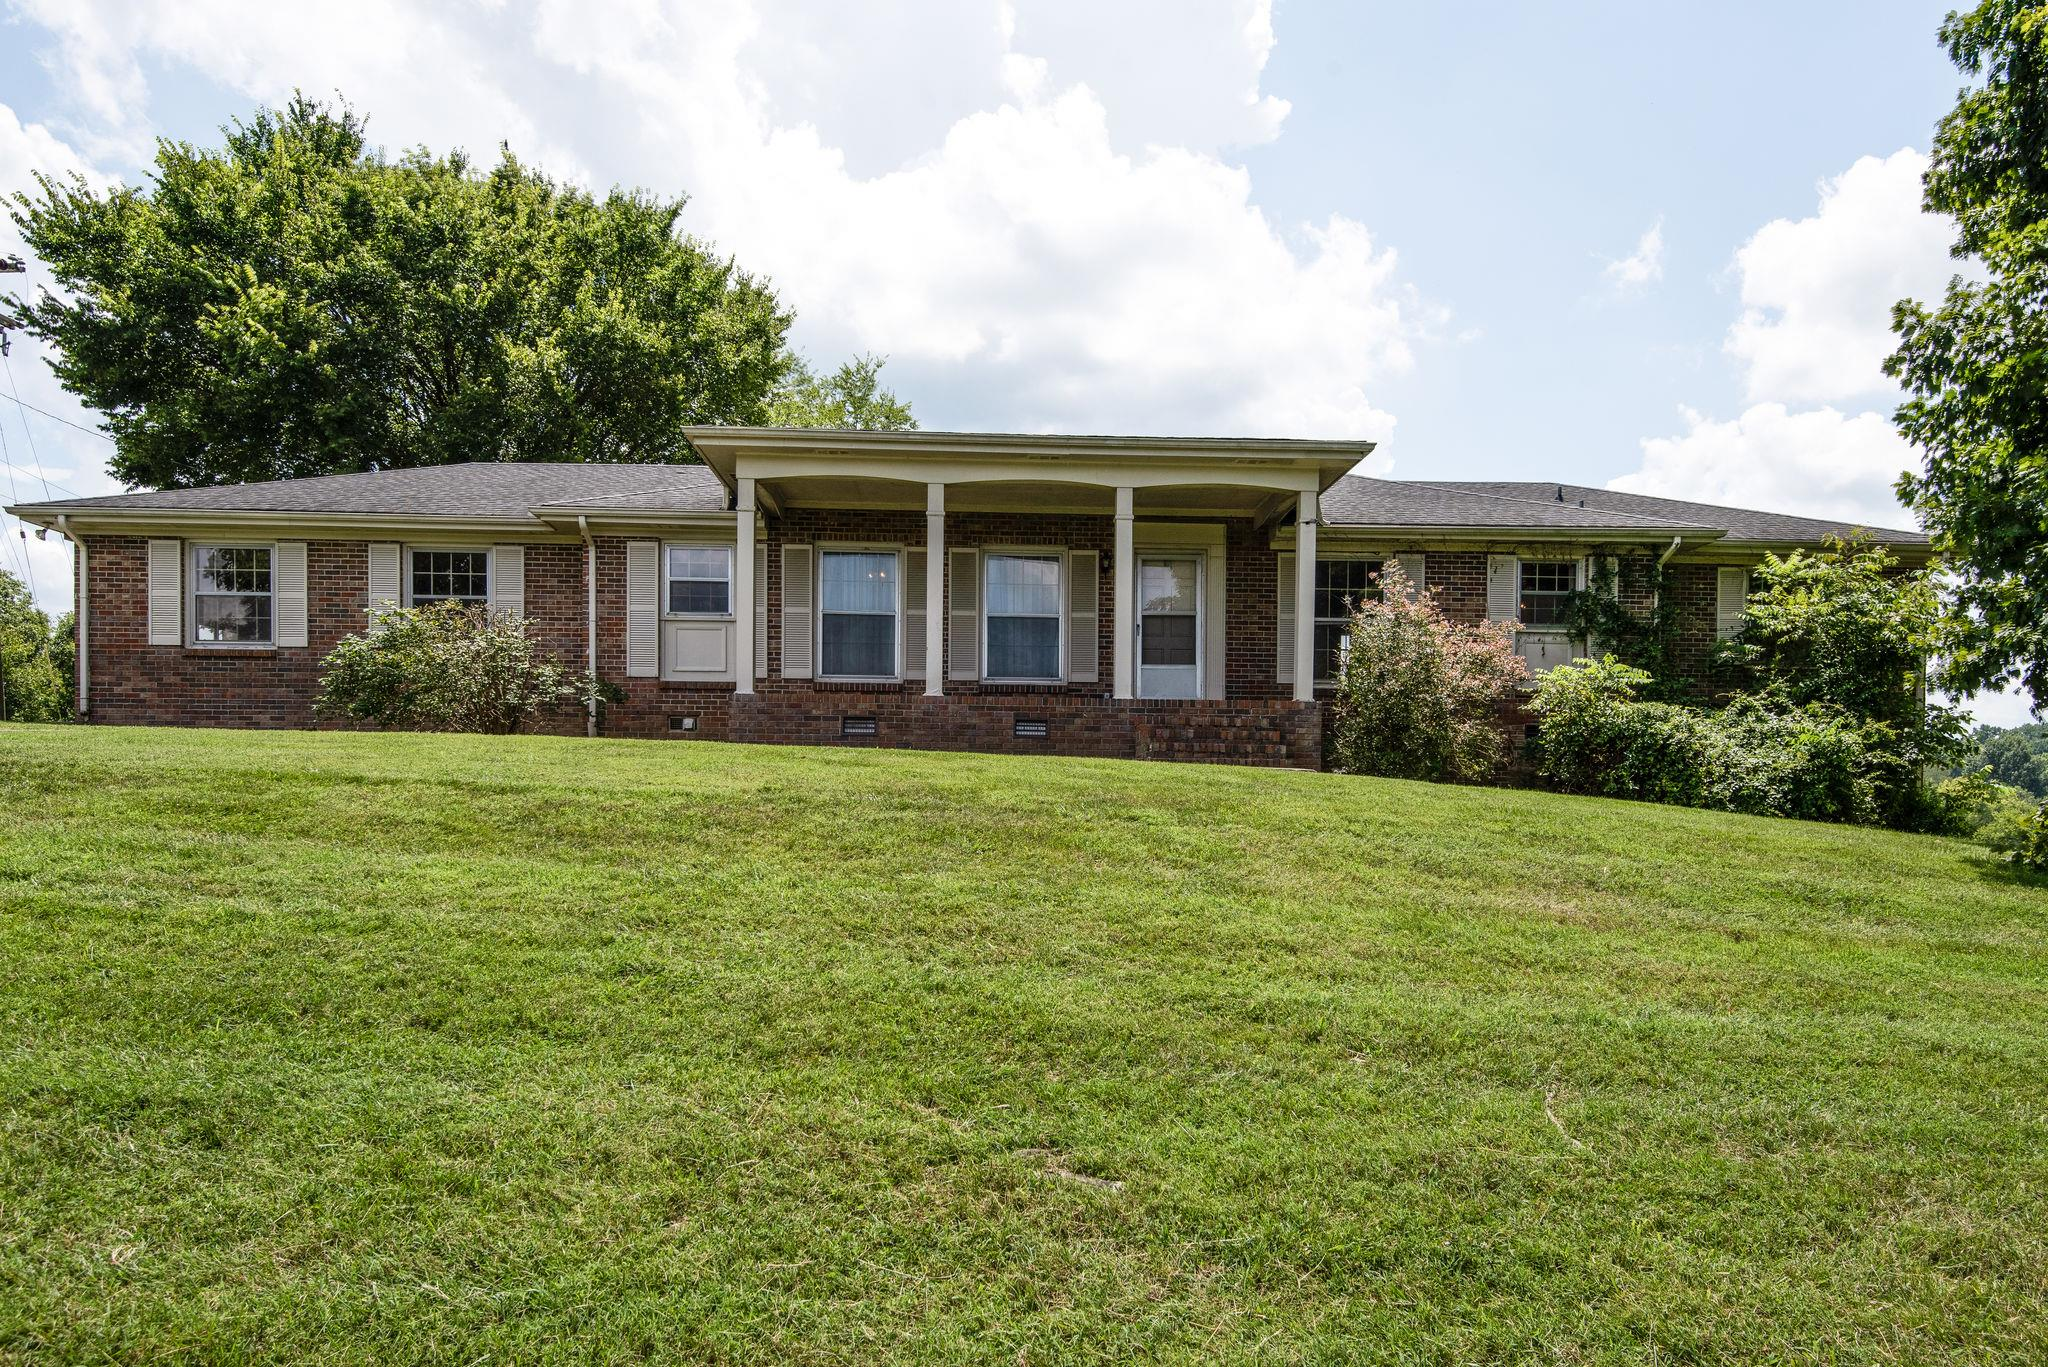 6689 Burkitt Rd, Antioch, TN 37013 - Antioch, TN real estate listing